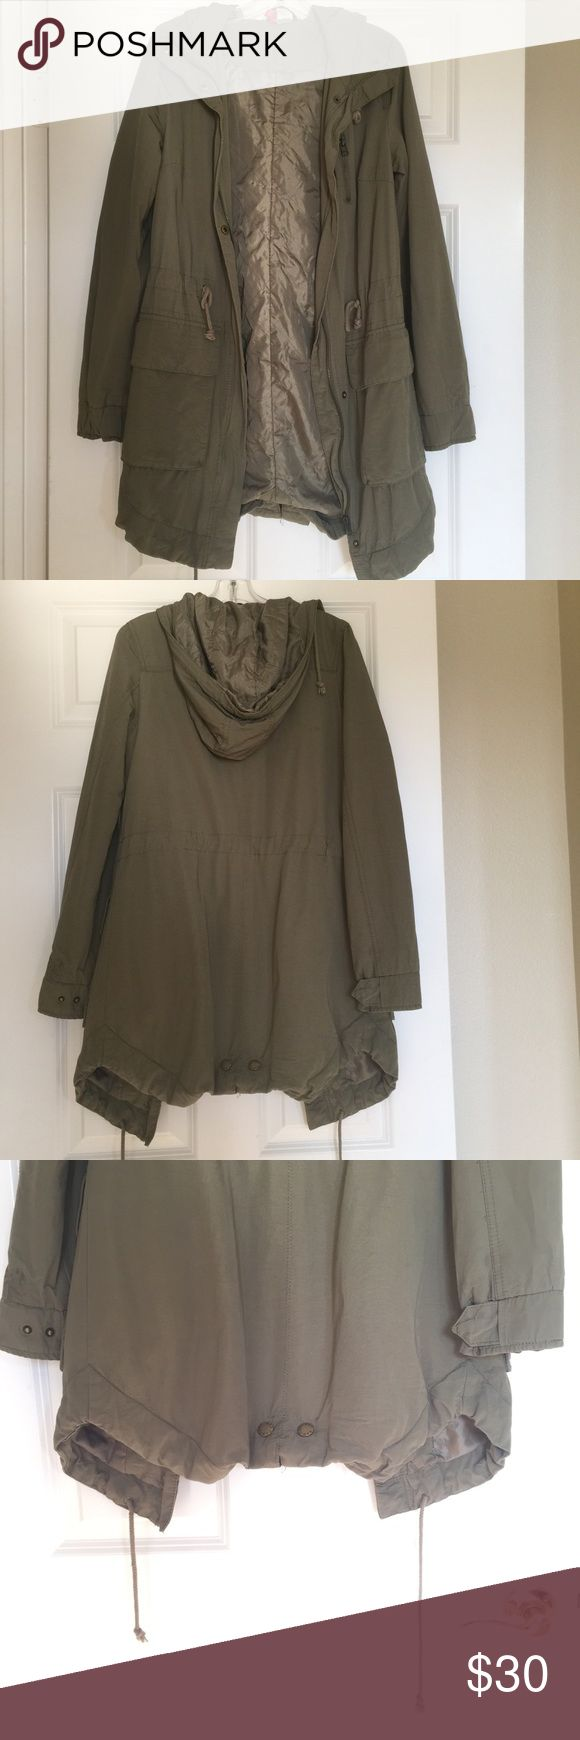 H&M winter coat This is a long winter coat. It is army green, has strings to pull it in tighter for warmth at the bottom and also strings to pull it in at the waist. It zips down but also buttons over the zipper. Two big pockets and a hood Divided Jackets & Coats